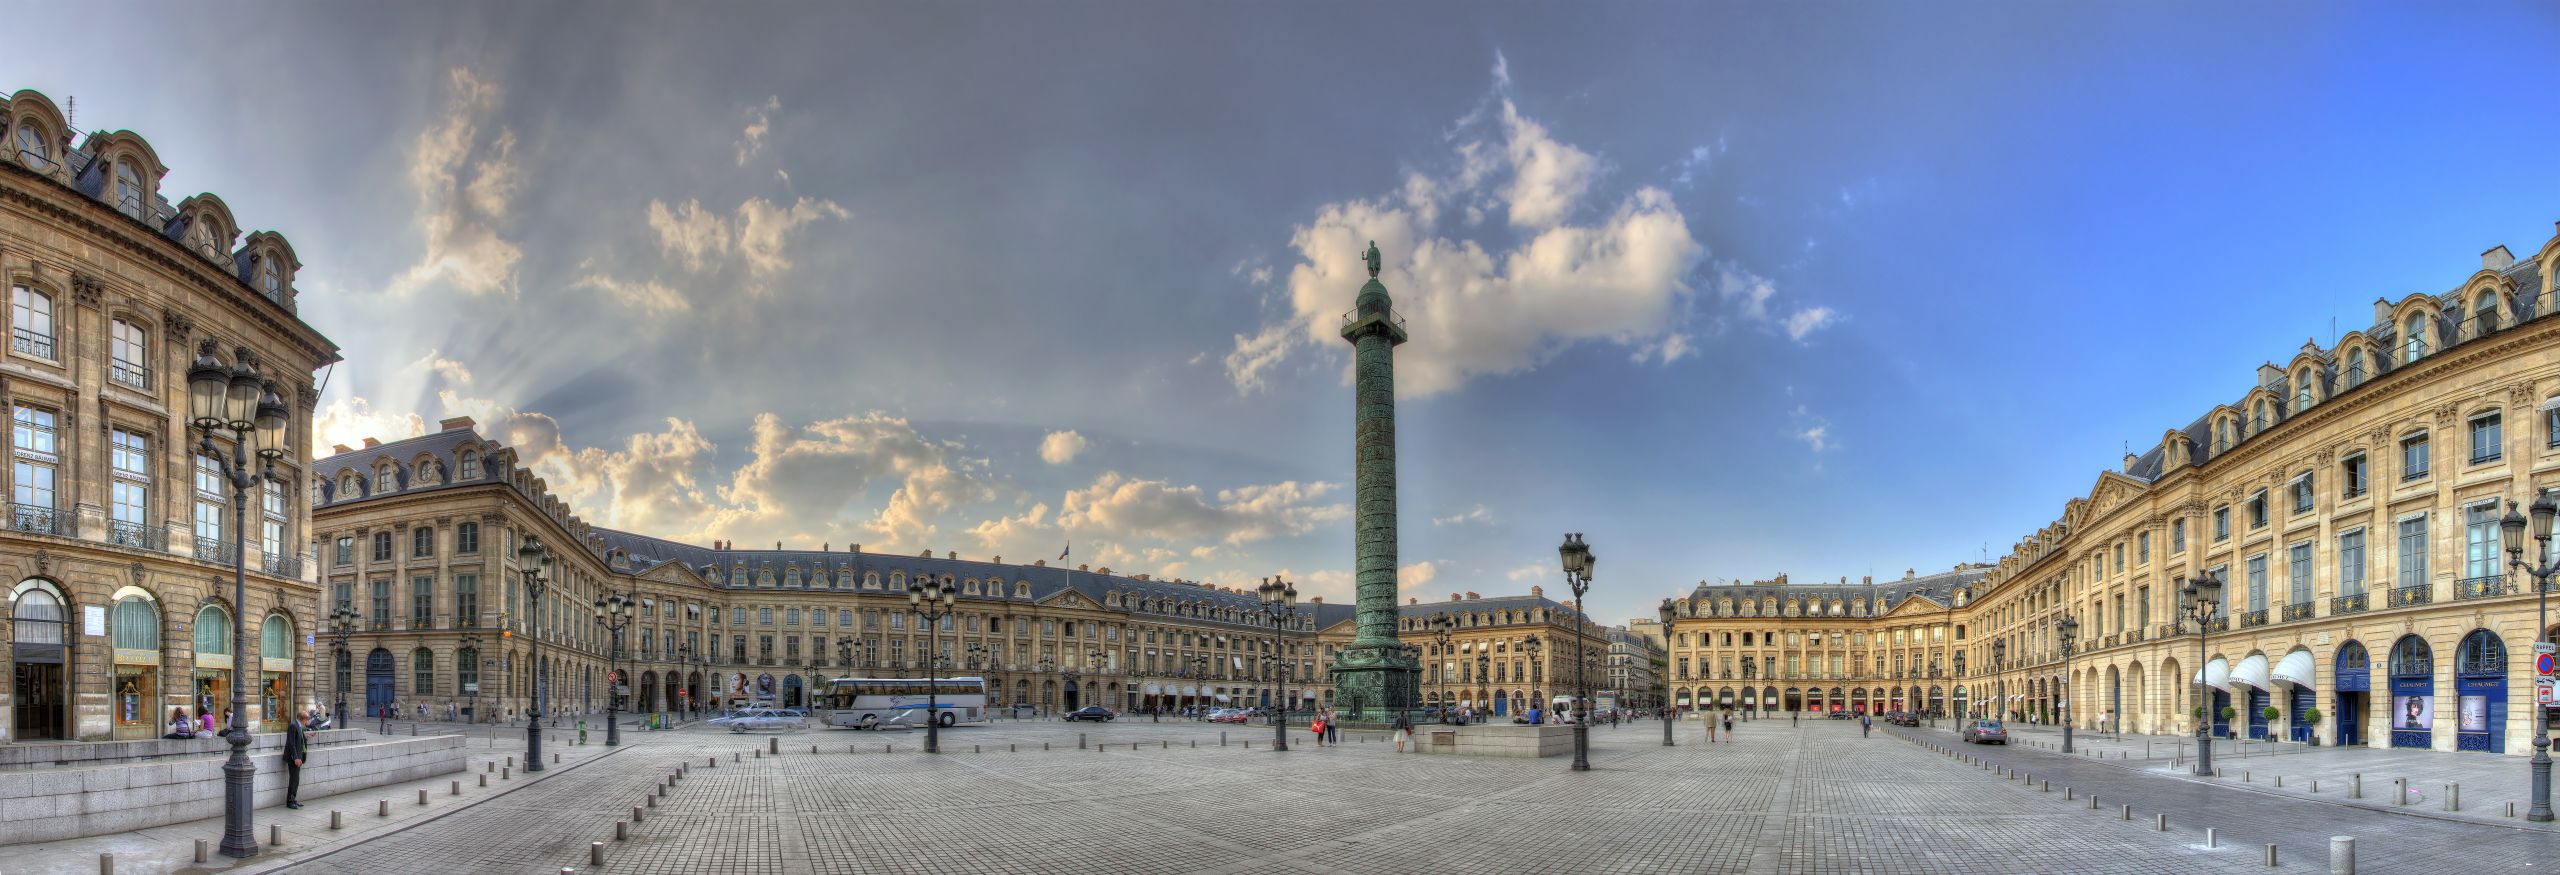 Place Vendome Paris 20 April 2011